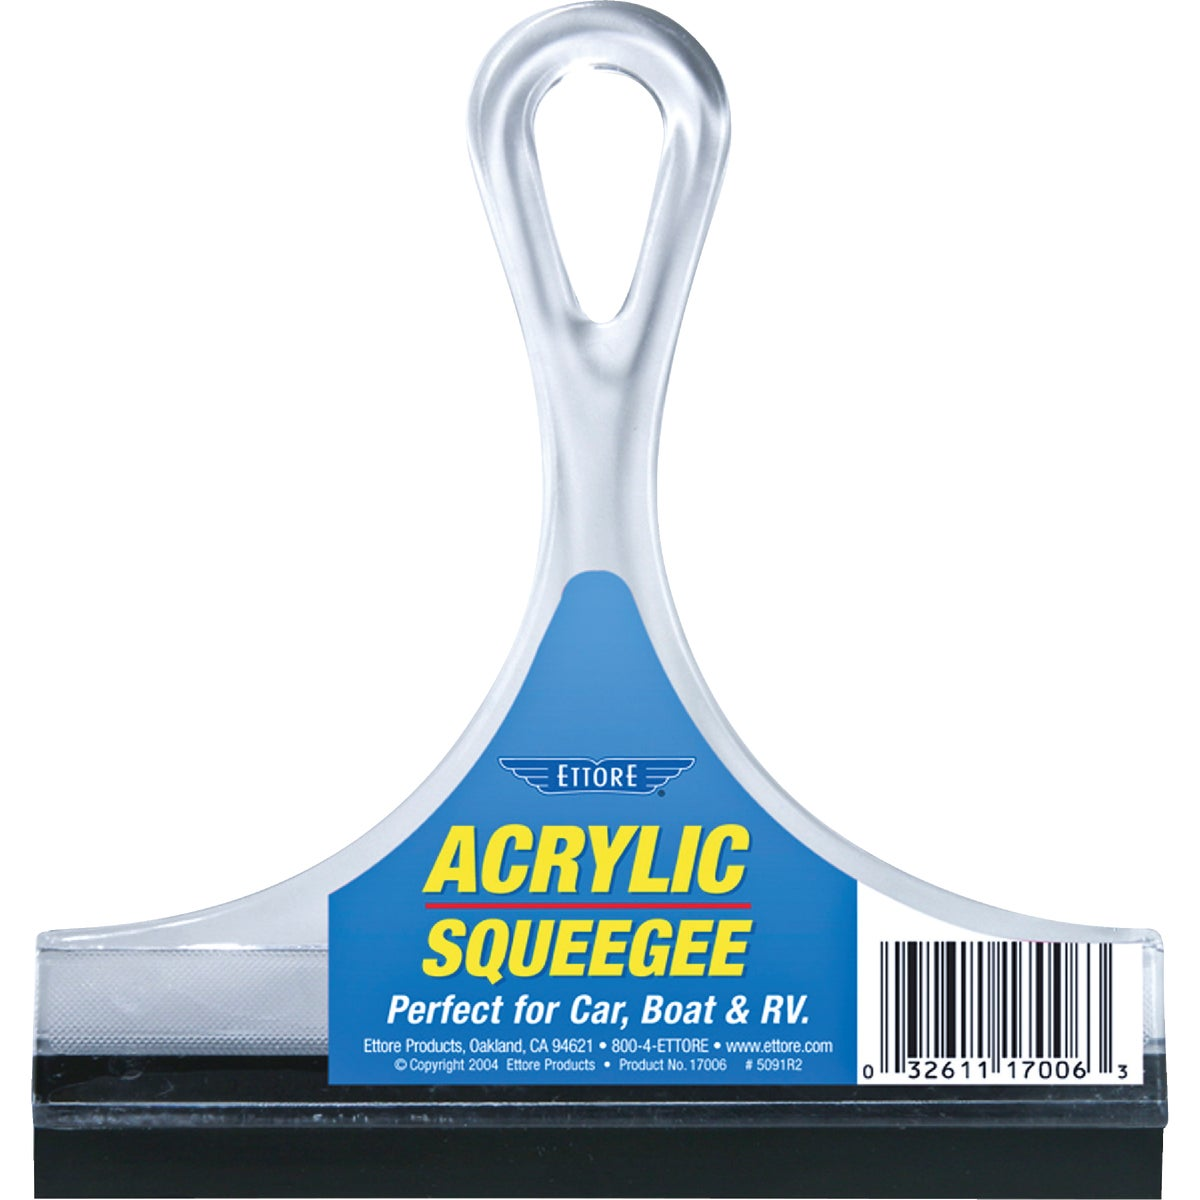 "6"" SQUEEGEE - 17006 by Ettore Products Co"